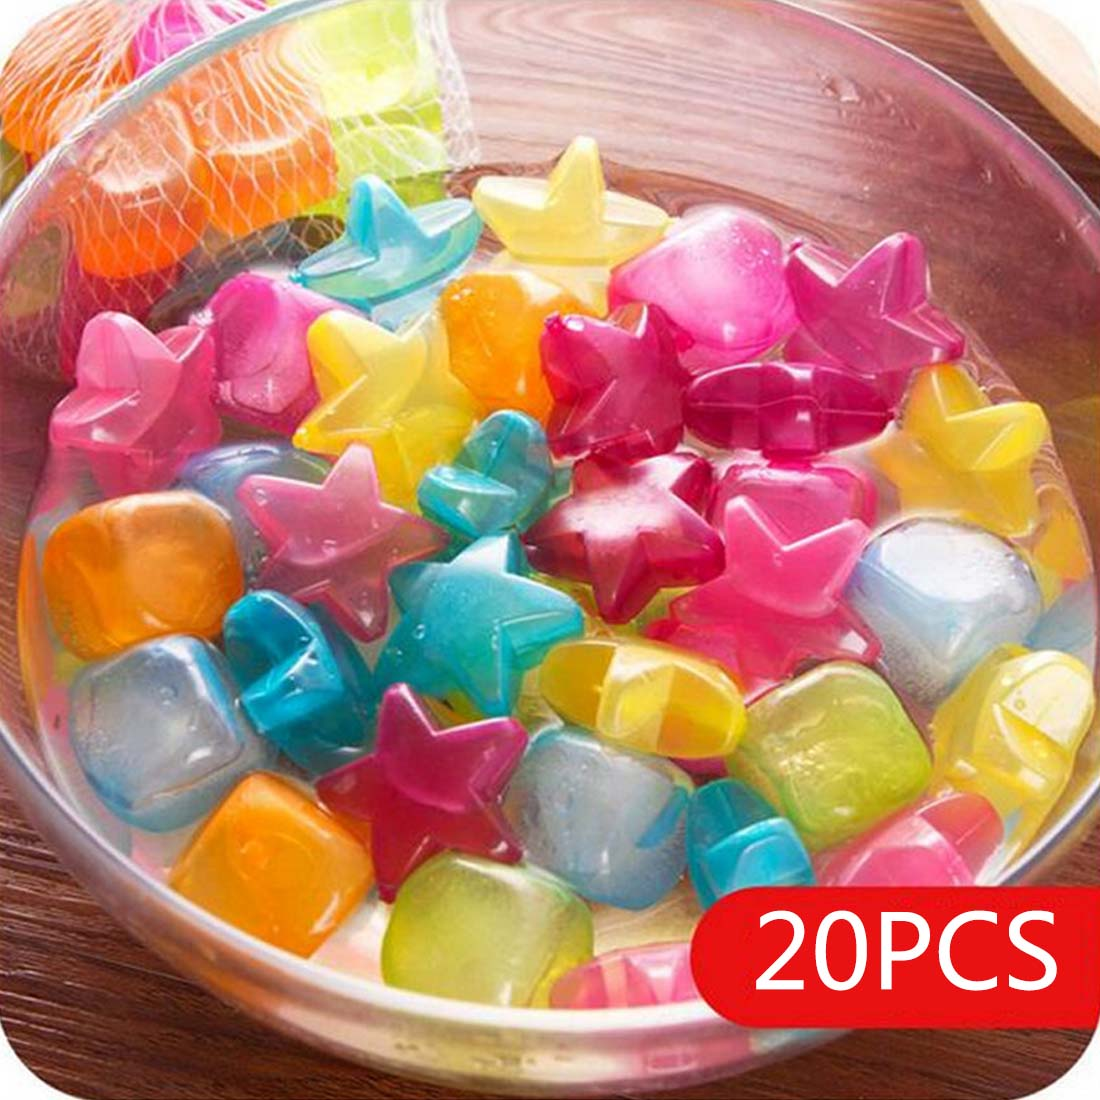 Kitchen Accessories Tool 20pcs Star Shaped Ice Cubes Plastic Reusable Multicolour Ice Cube Physical Cooling Tools Party Tool